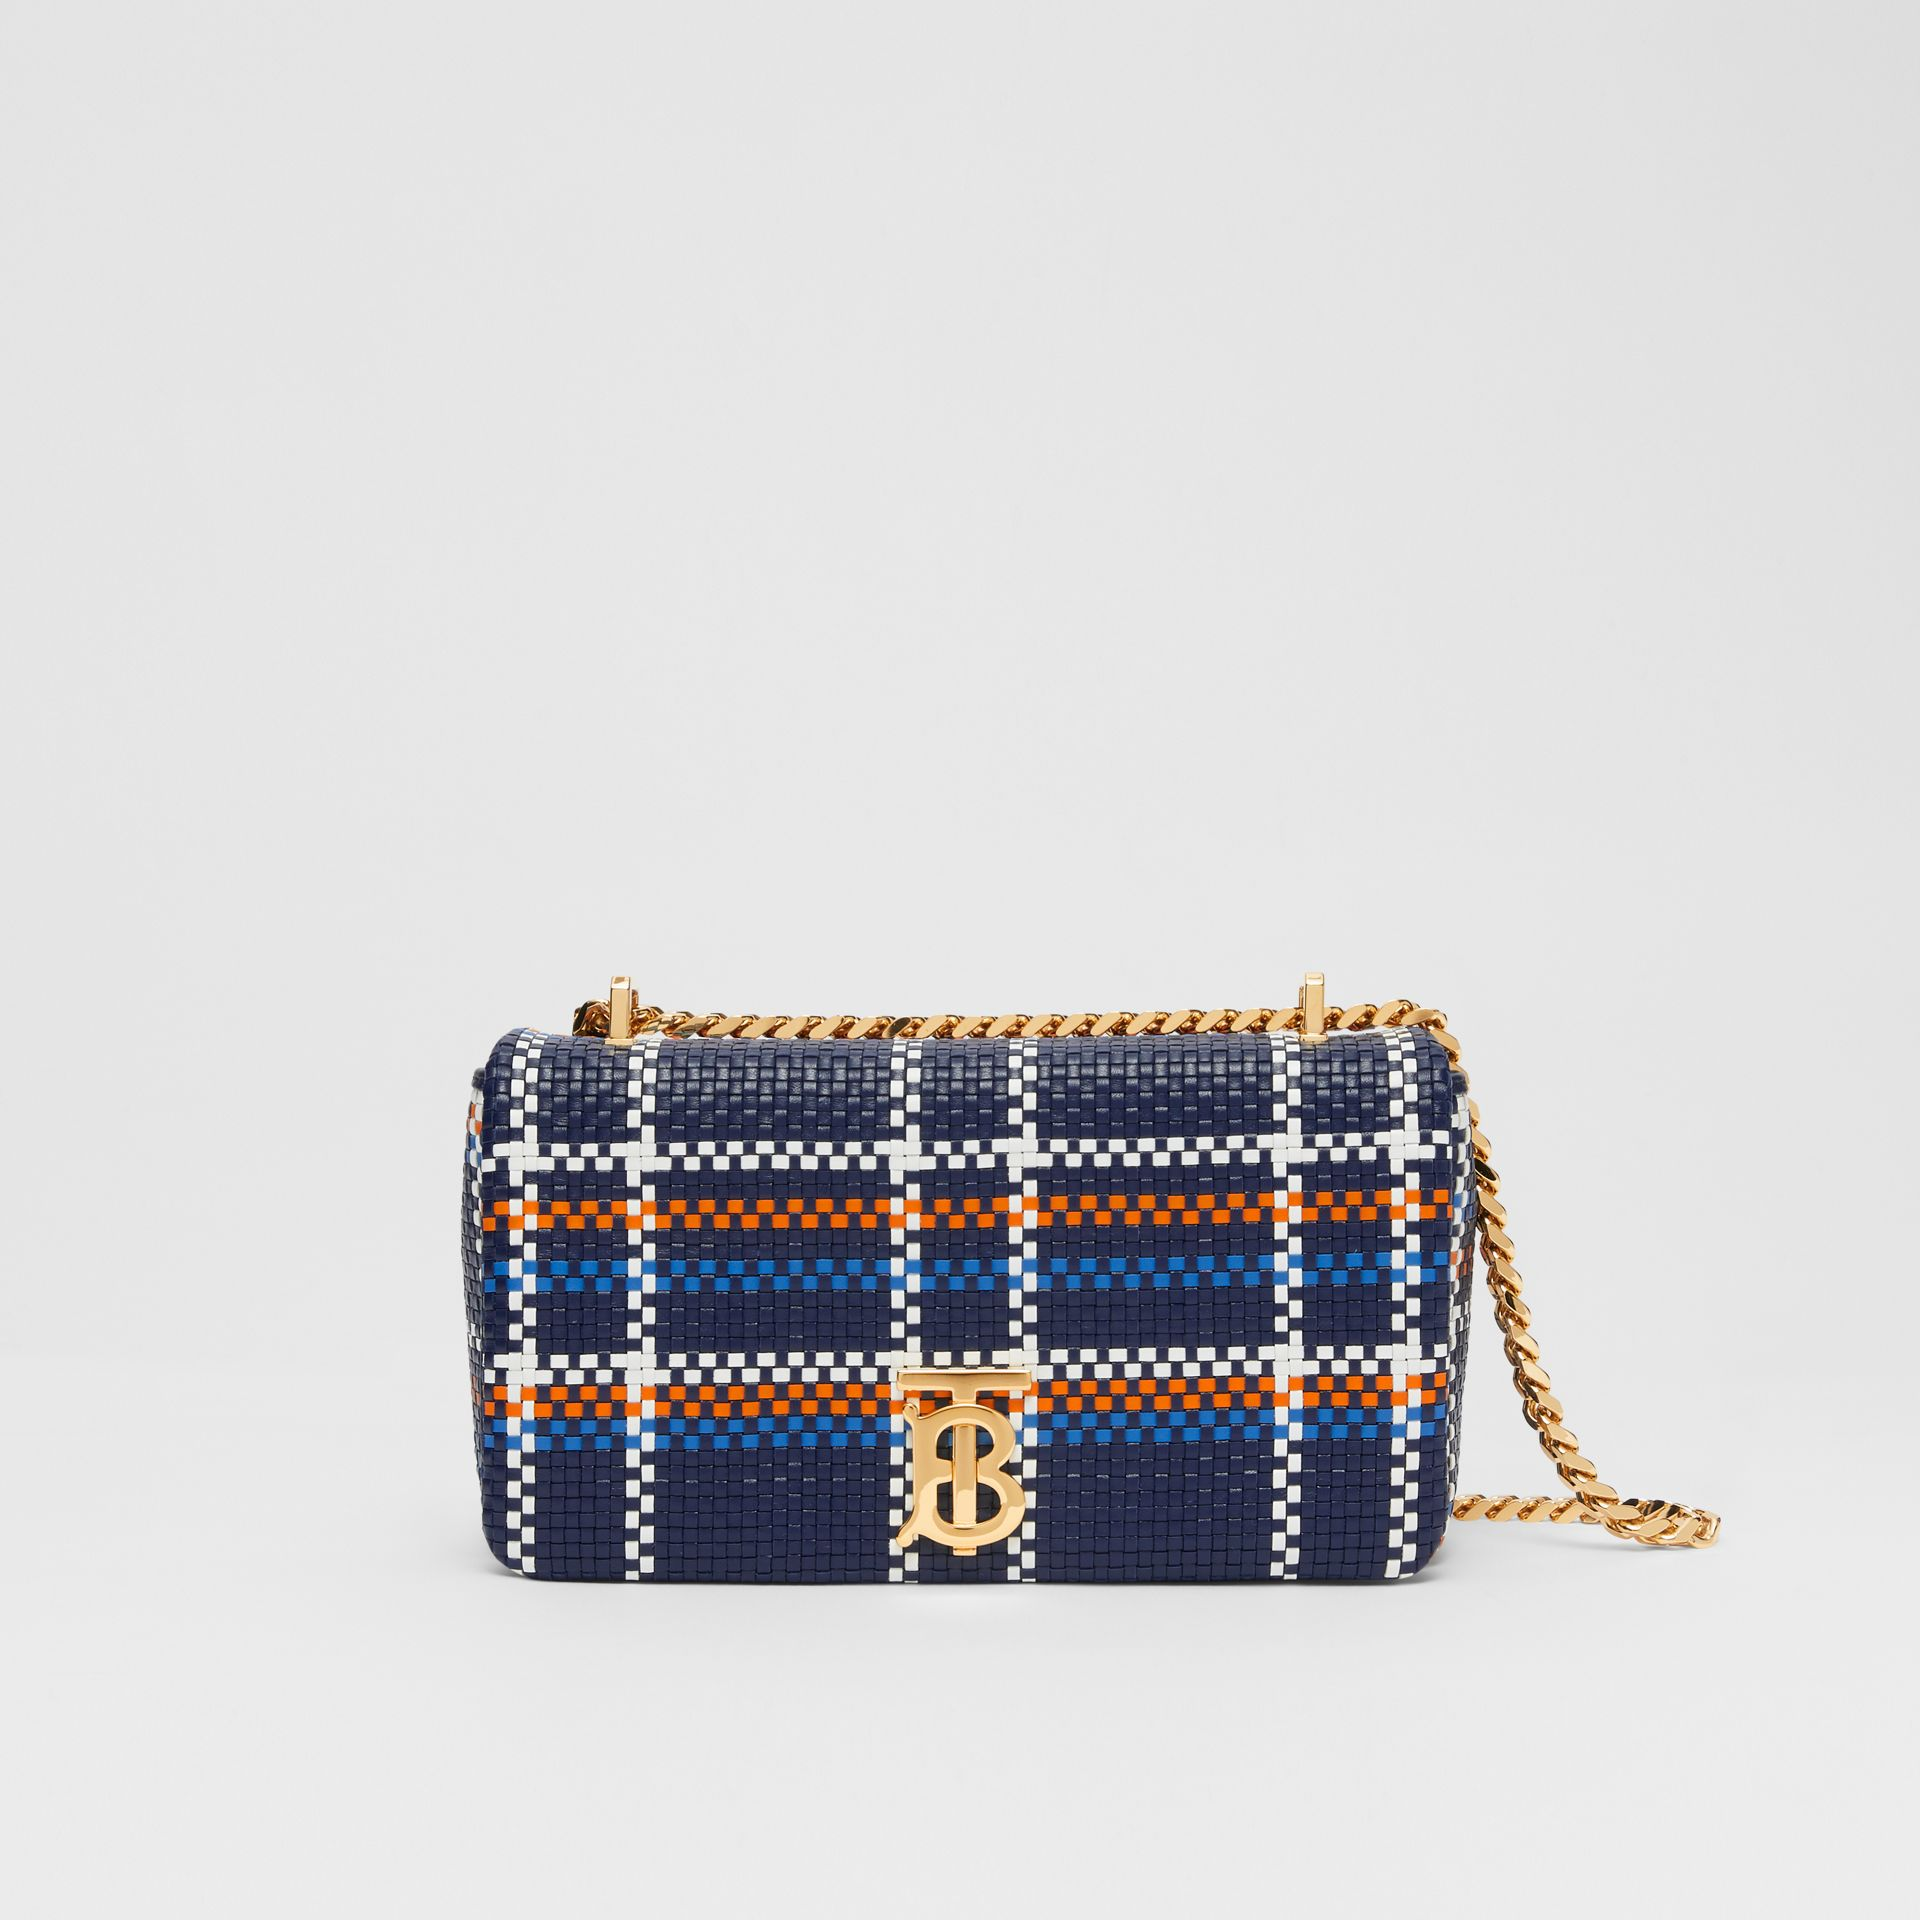 Small Latticed Leather Lola Bag in Blue/white/orange - Women | Burberry - gallery image 0